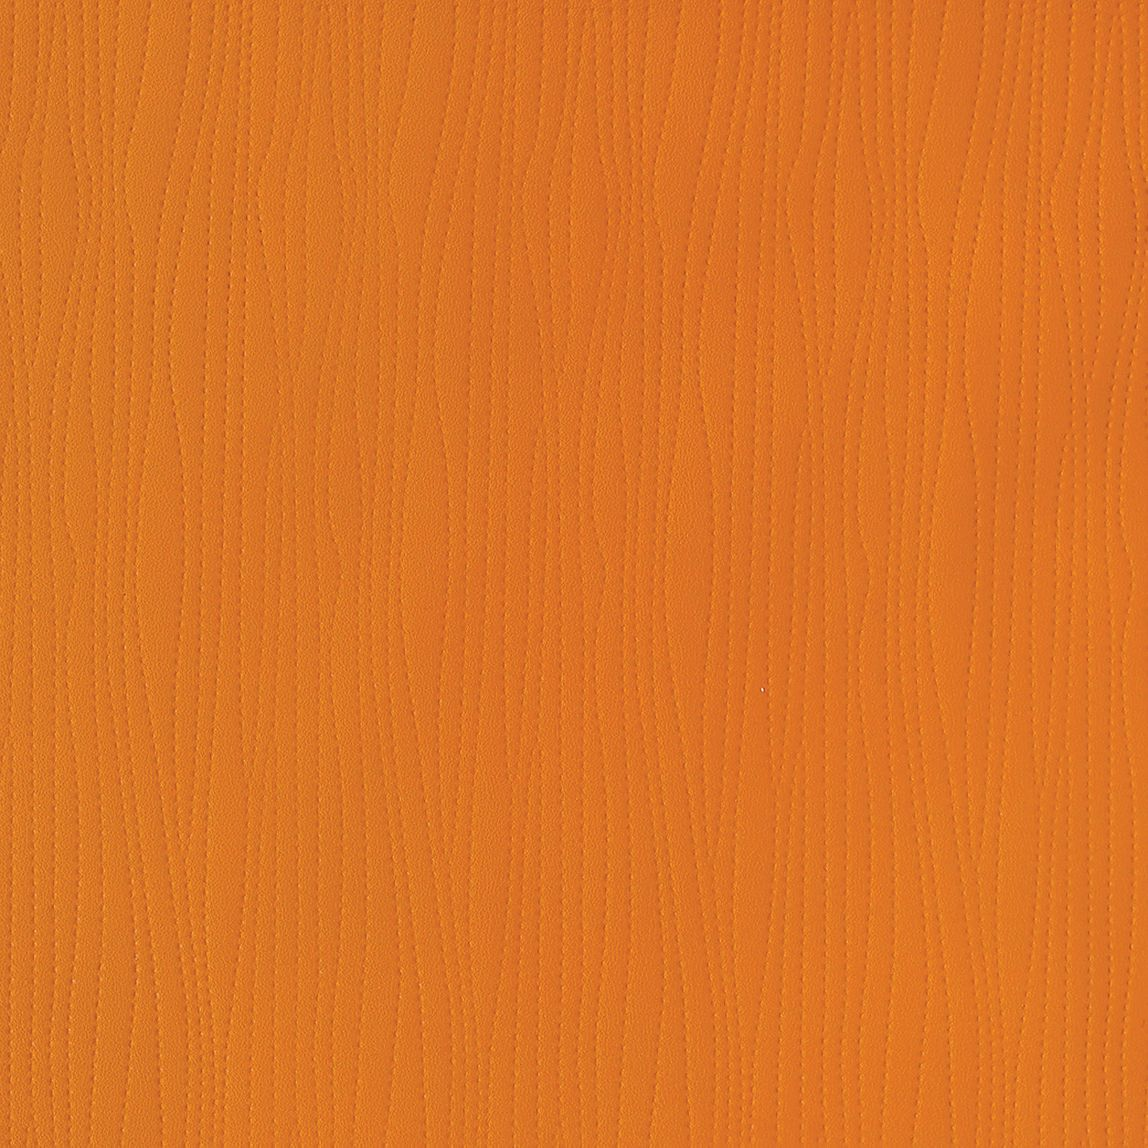 Kindred Orangery Swatch